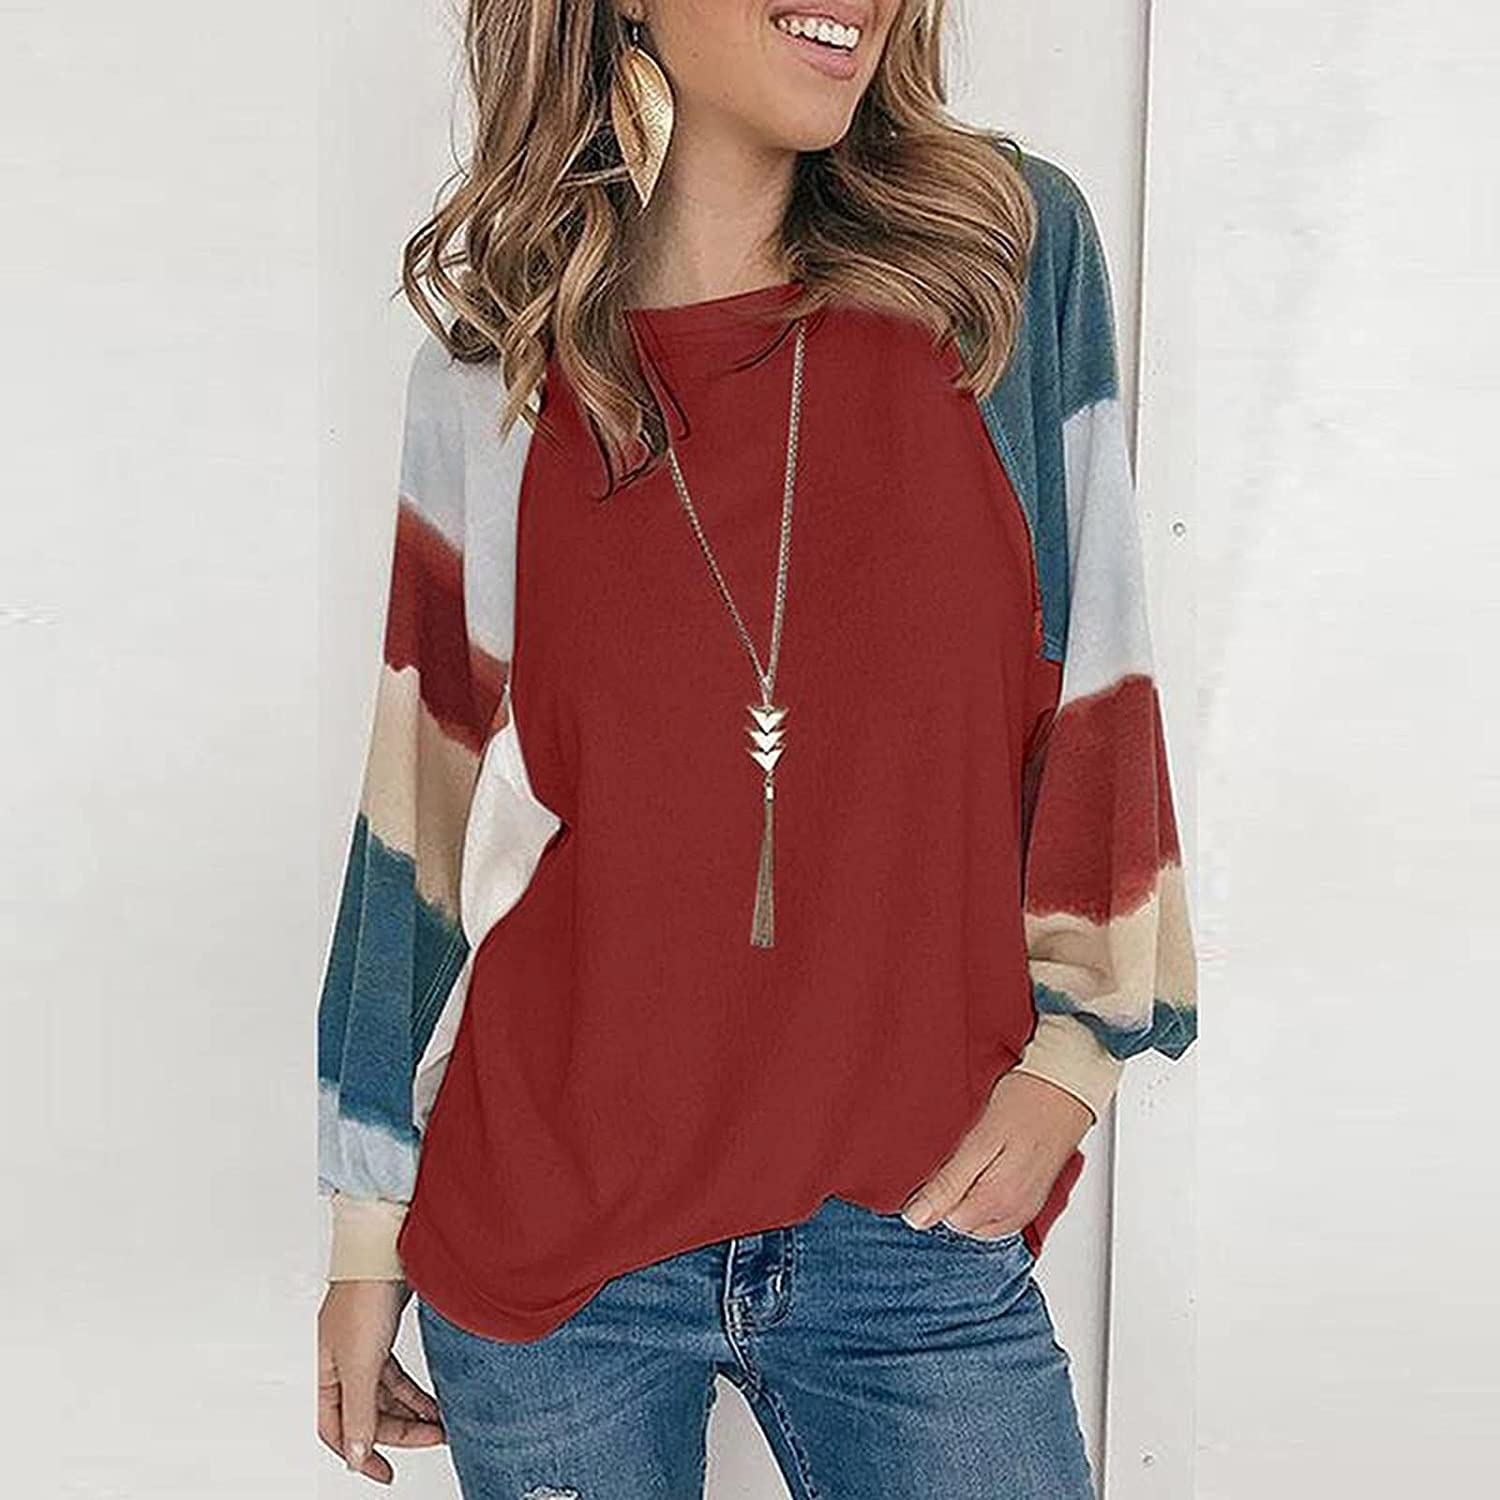 Women's Round Neck Long Sleeve Leopard Print Casual Loose Tees T-shirt Blouse Spring Autumn Clothes